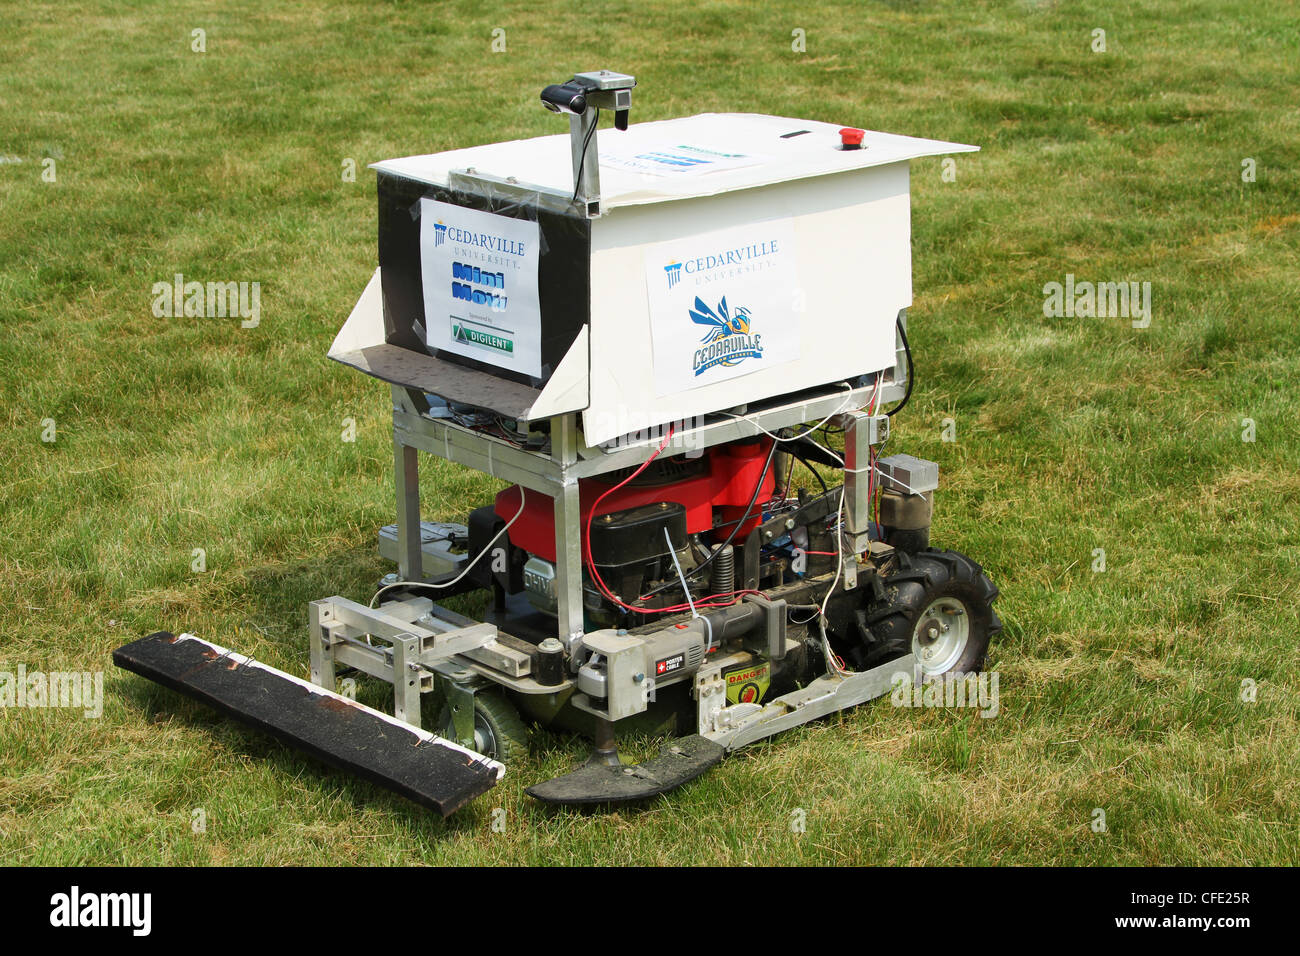 Experimental Robotic Lawn Mower by team Cedarville University. - Stock Image